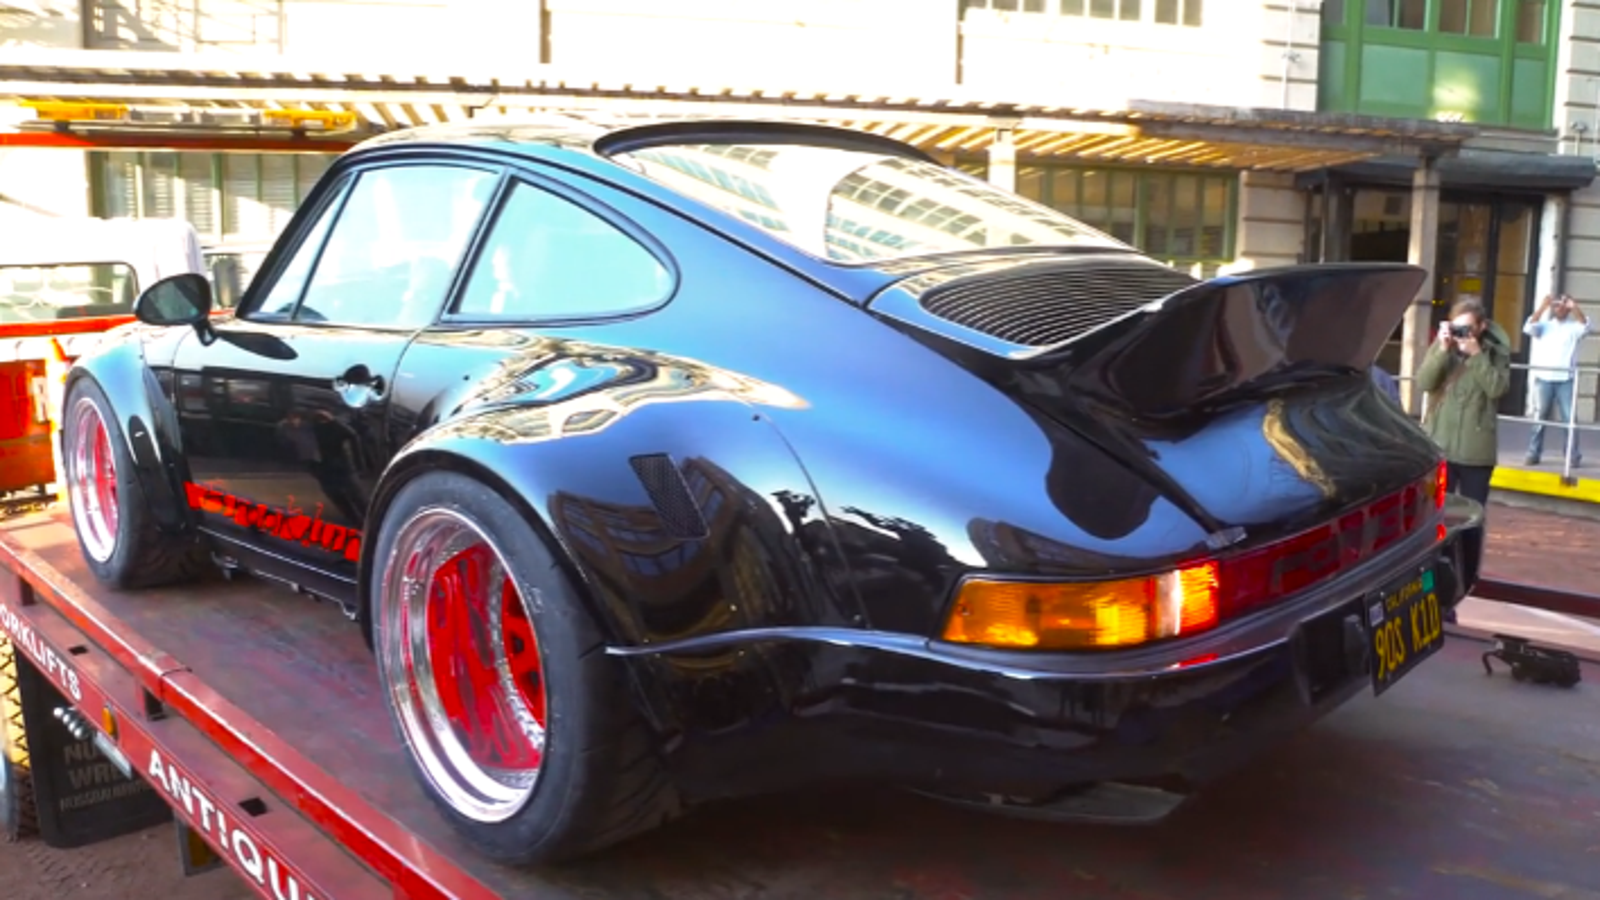 Japan S Most Insane Porsche Tuner Built A 911 In Brooklyn And It